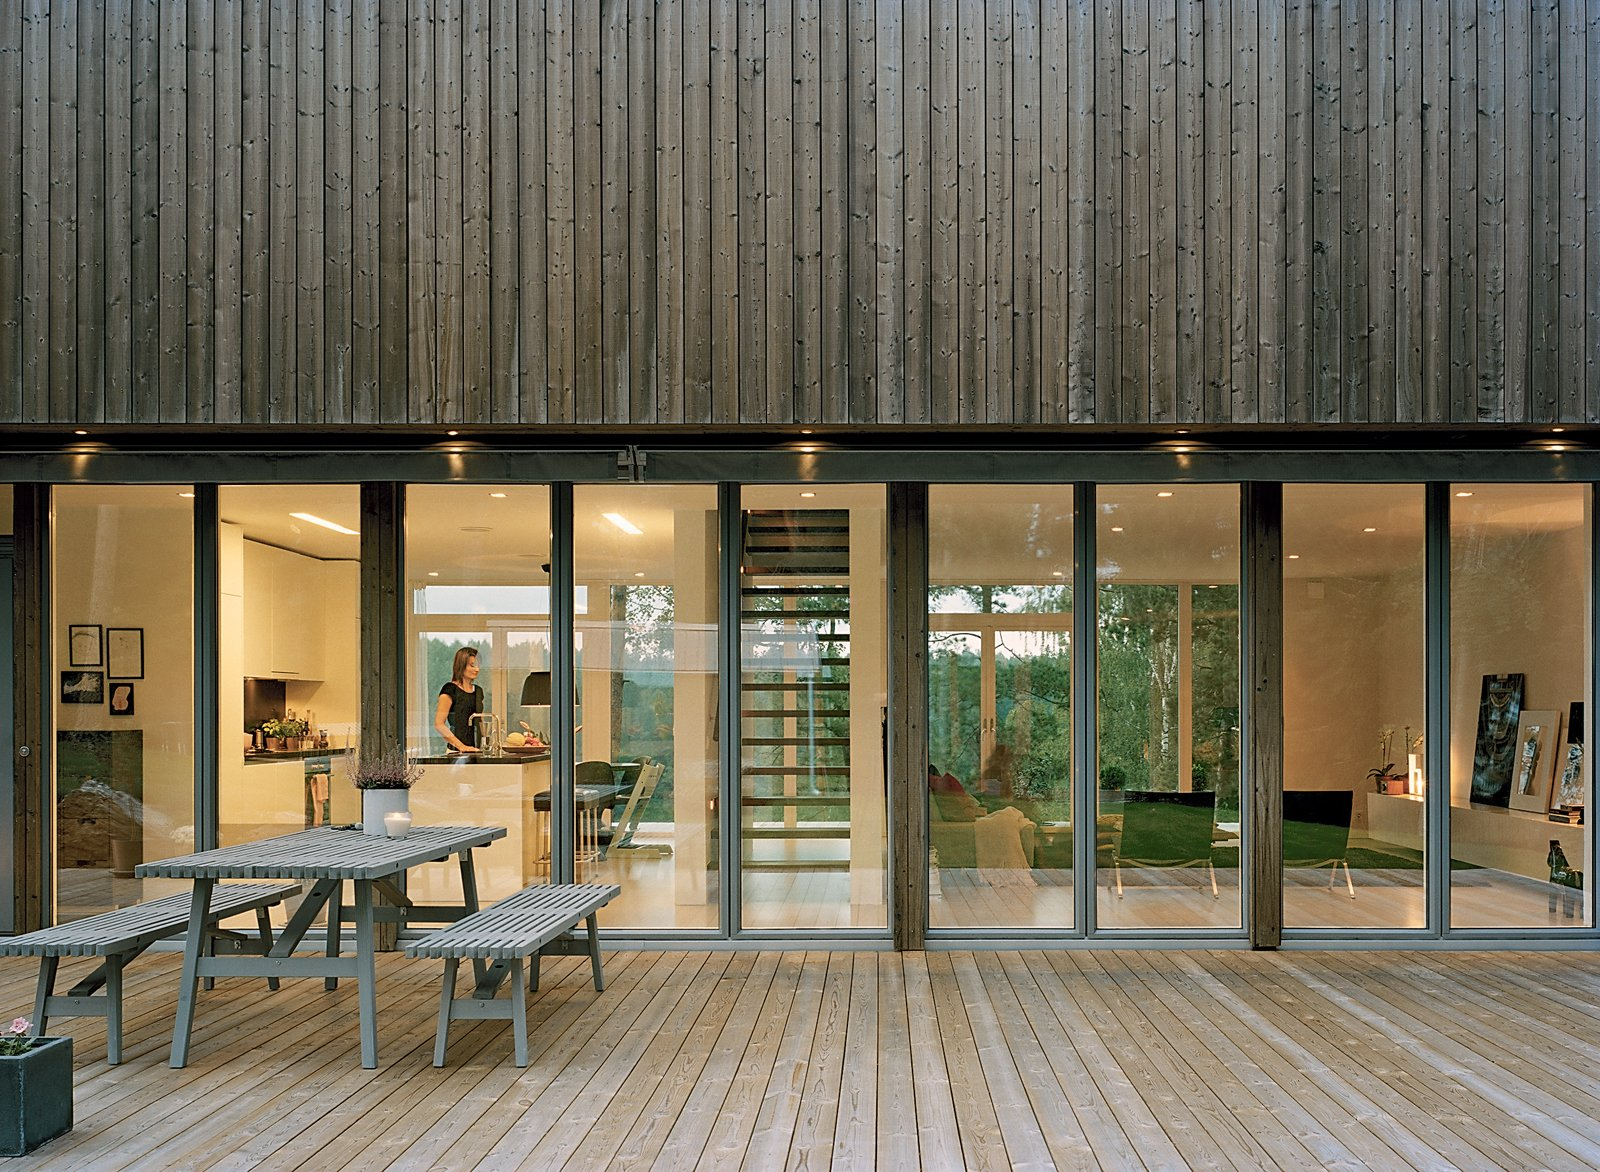 """Outdoor, Wood Patio, Porch, Deck, Large Patio, Porch, Deck, and Back Yard The spruce panels that coat the second-floor exterior will fade in tandem with the zinc-coated steel that rims the glazed windows and doors. """"They will go gray like we do,"""" says Claesson.  Photo 6 of 13 in Sum of Its Parts"""